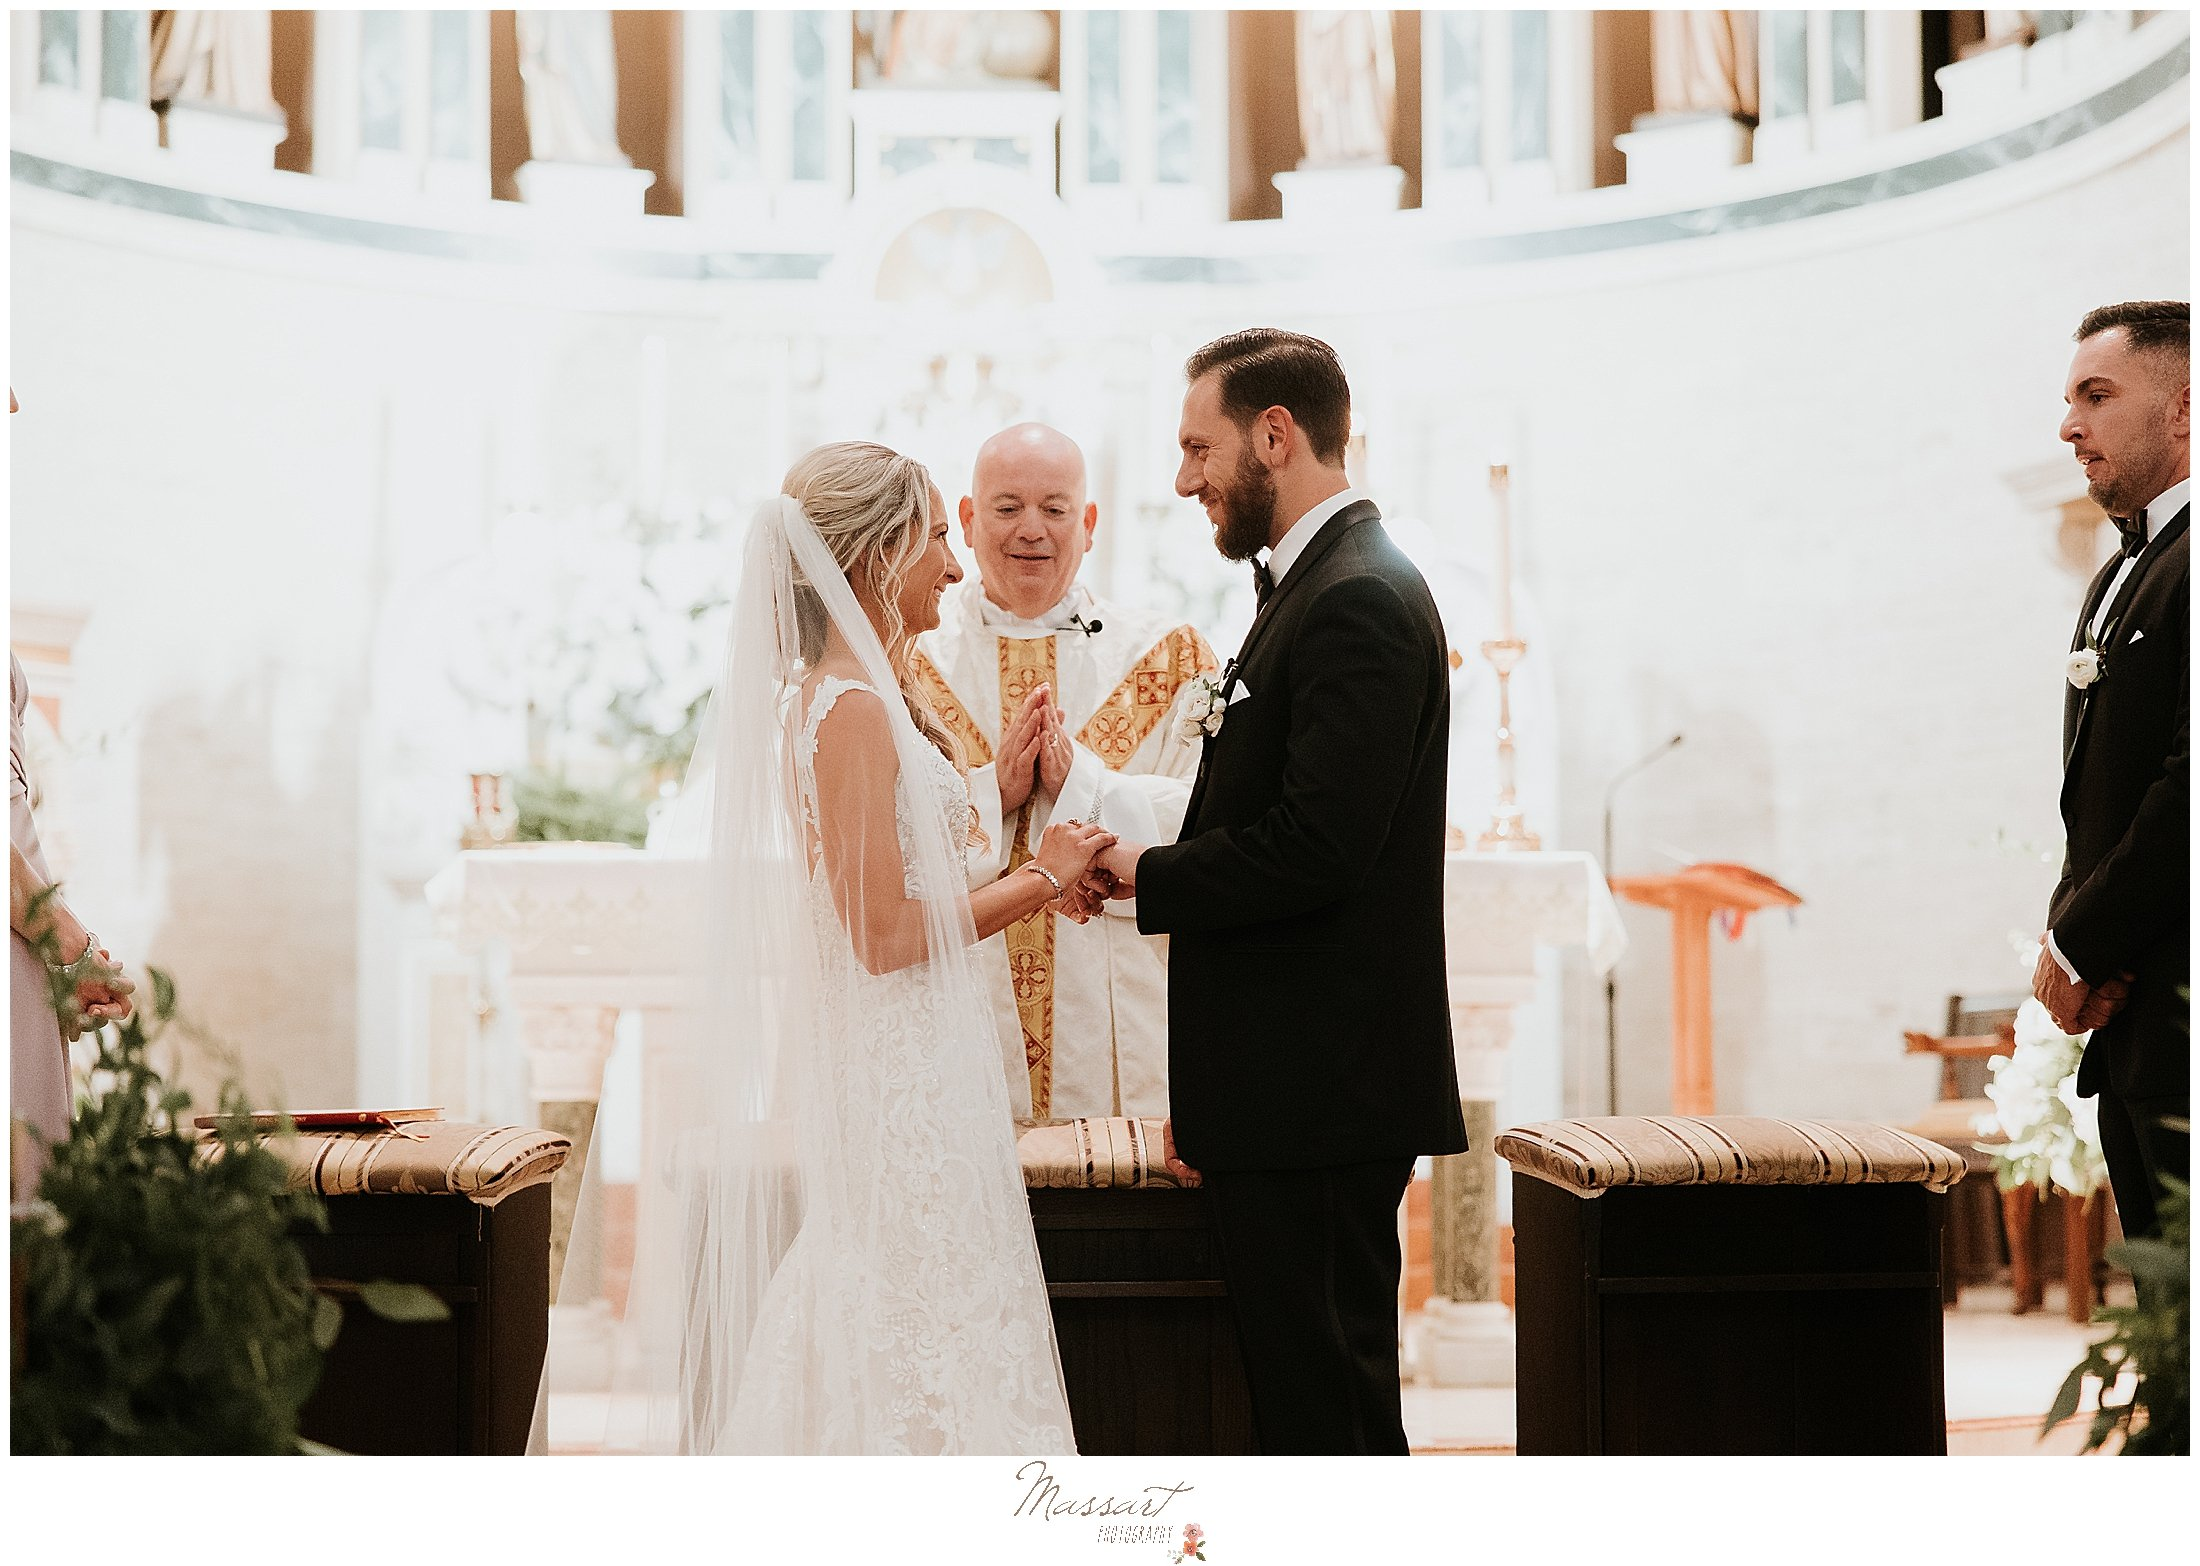 bride and groom exchange vows during traditional church wedding in St. Mary's Catholic Church